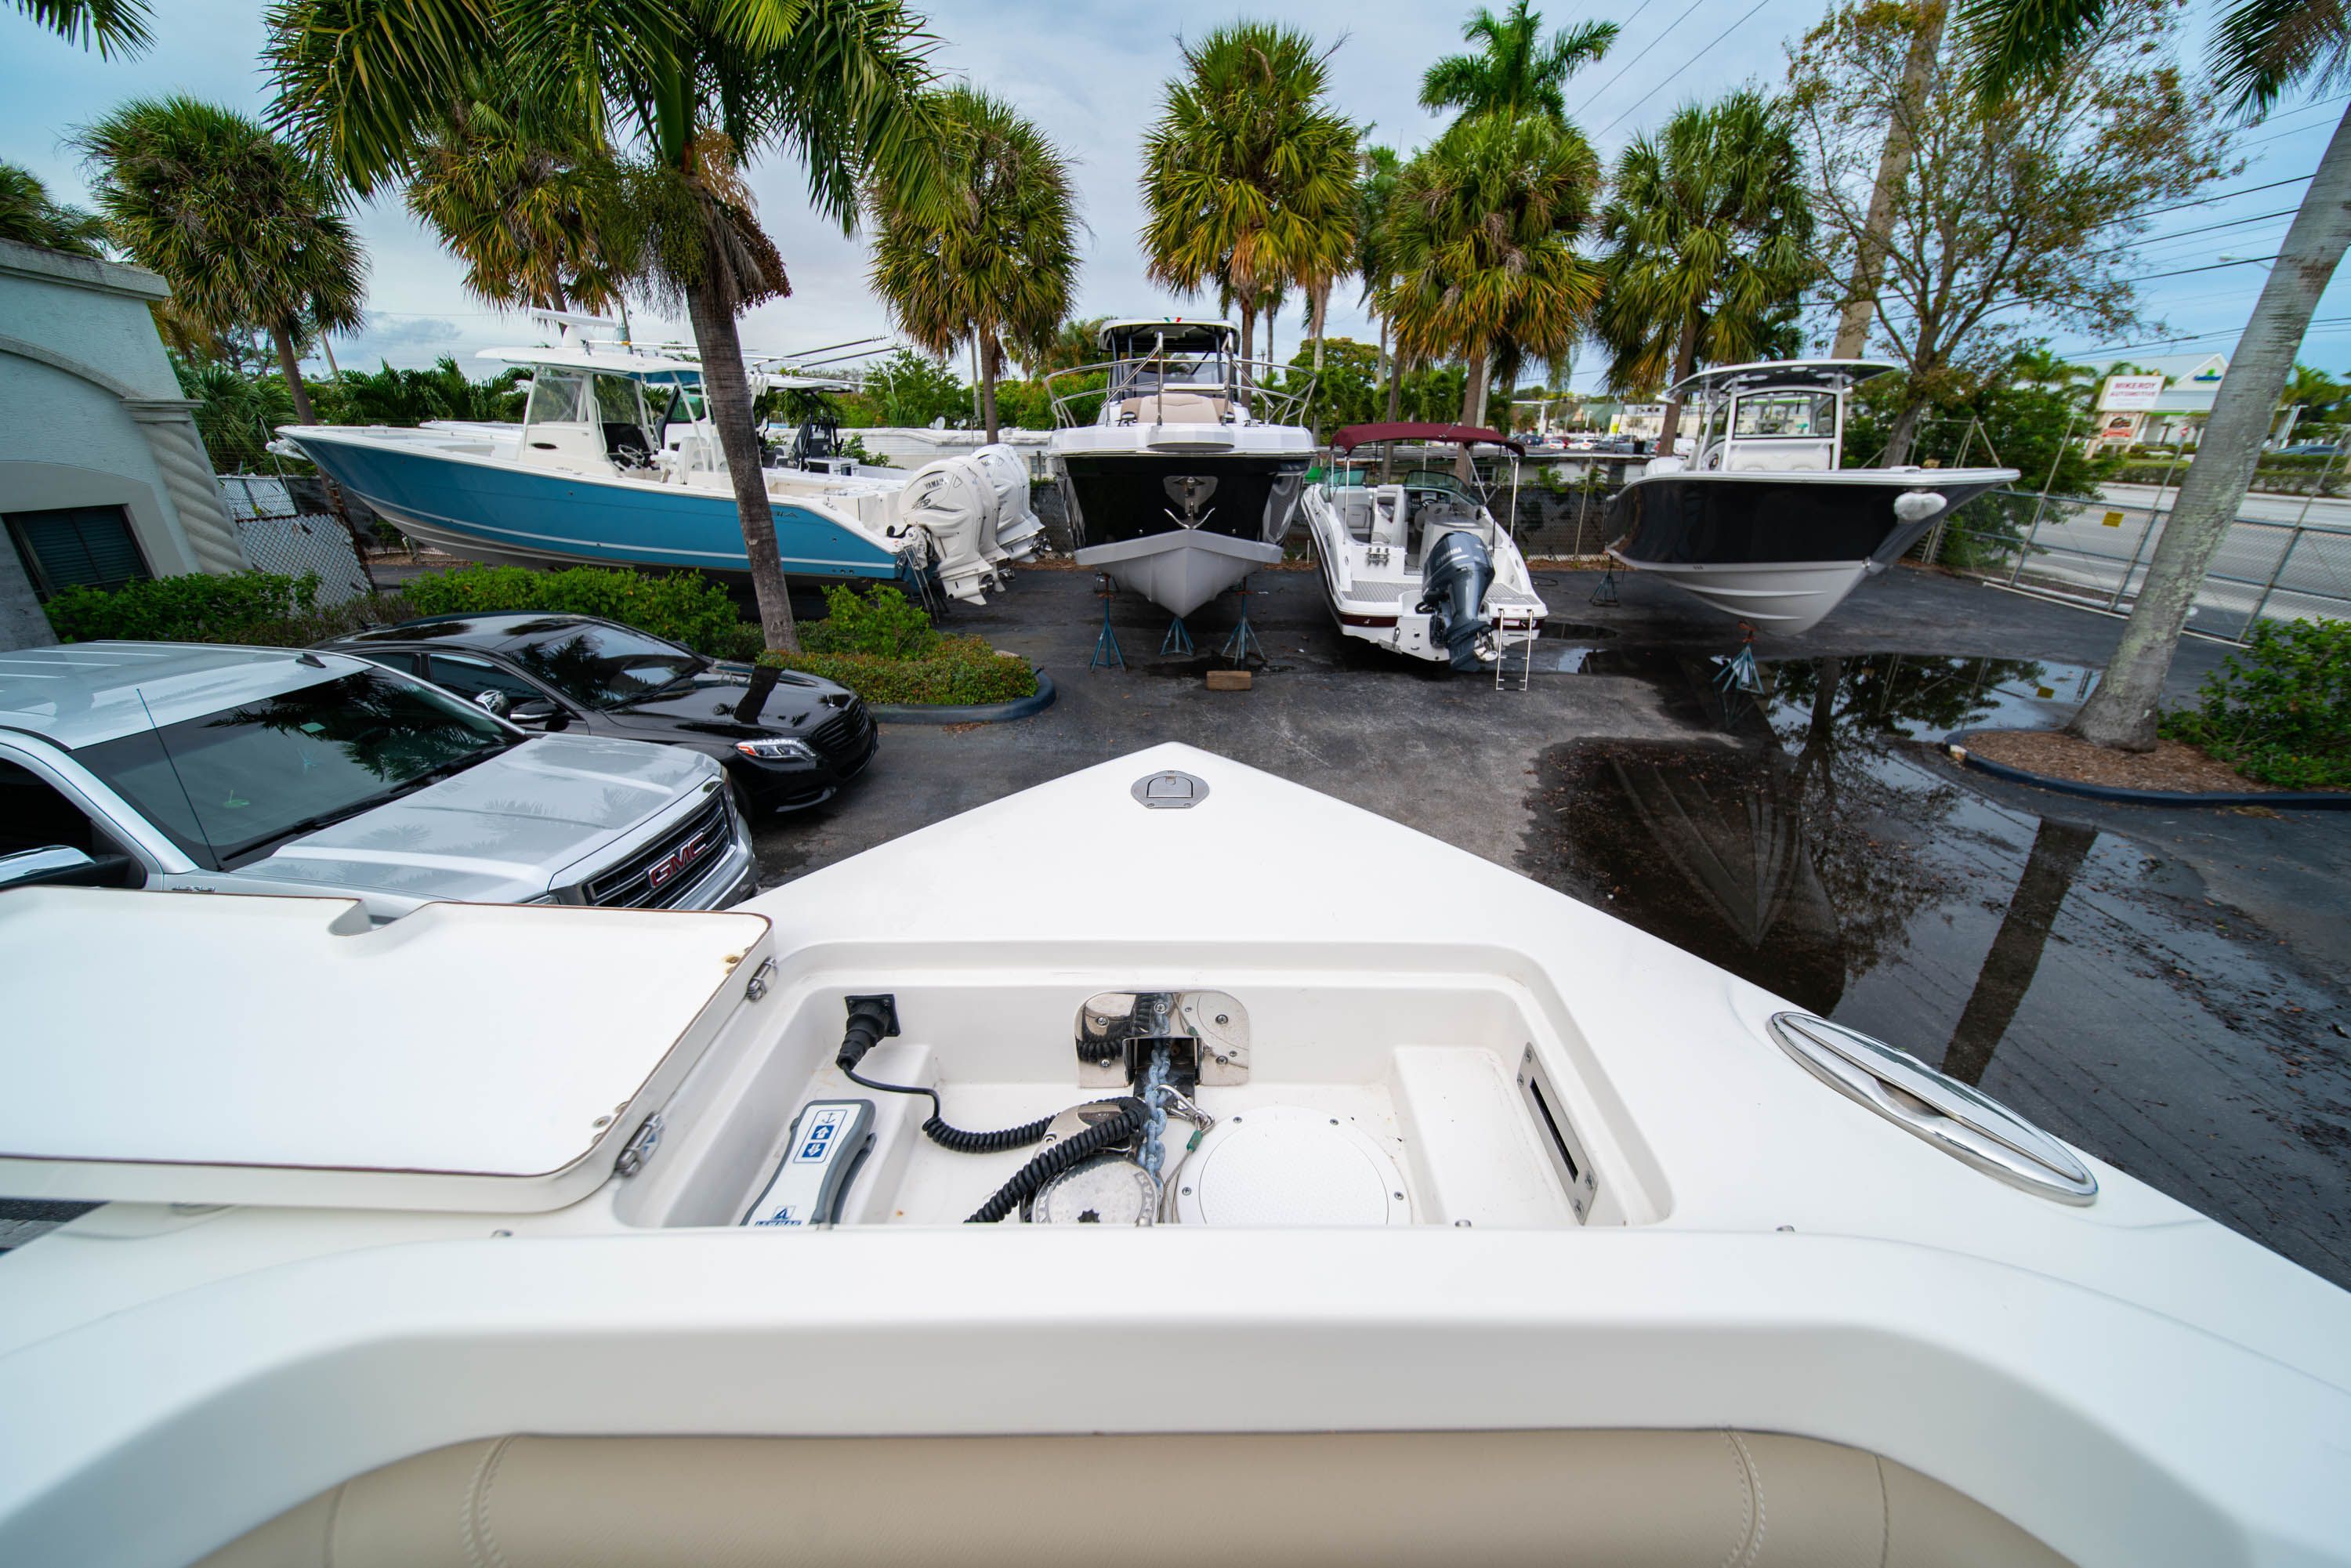 Thumbnail 68 for Used 2017 Sailfish 275 Dual Console boat for sale in West Palm Beach, FL